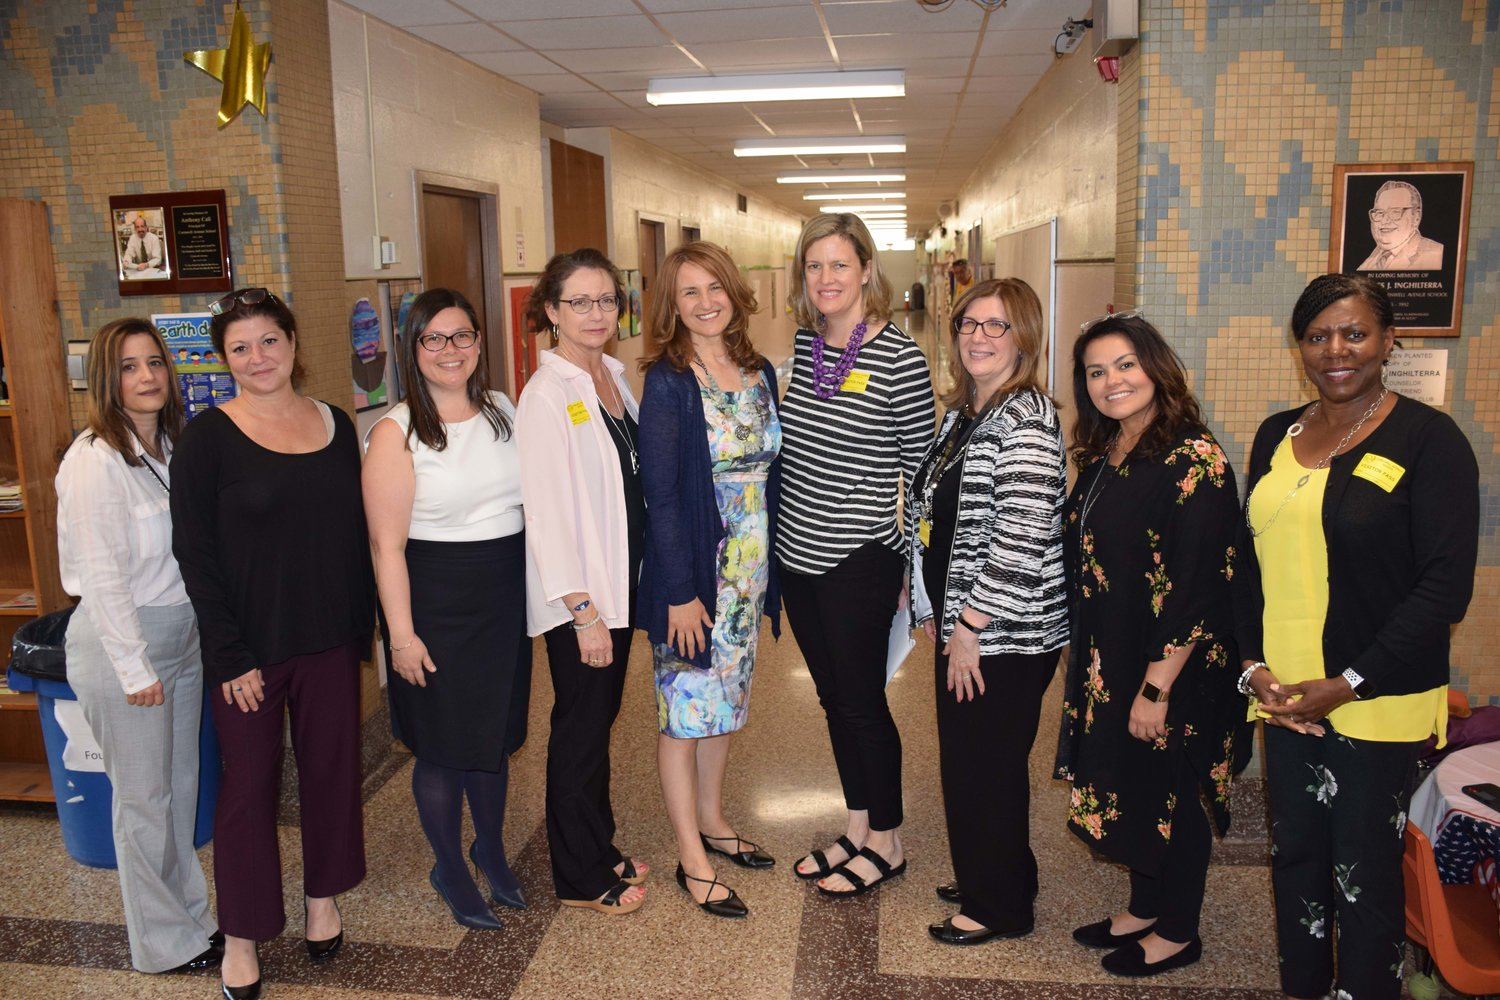 The West Hempstead School District welcomed Molloy College professors Dr. Andrea Honigsfeld and Dr. Maria Dove, as well as educators from North Carolina's Wake County Public School System on May 23.